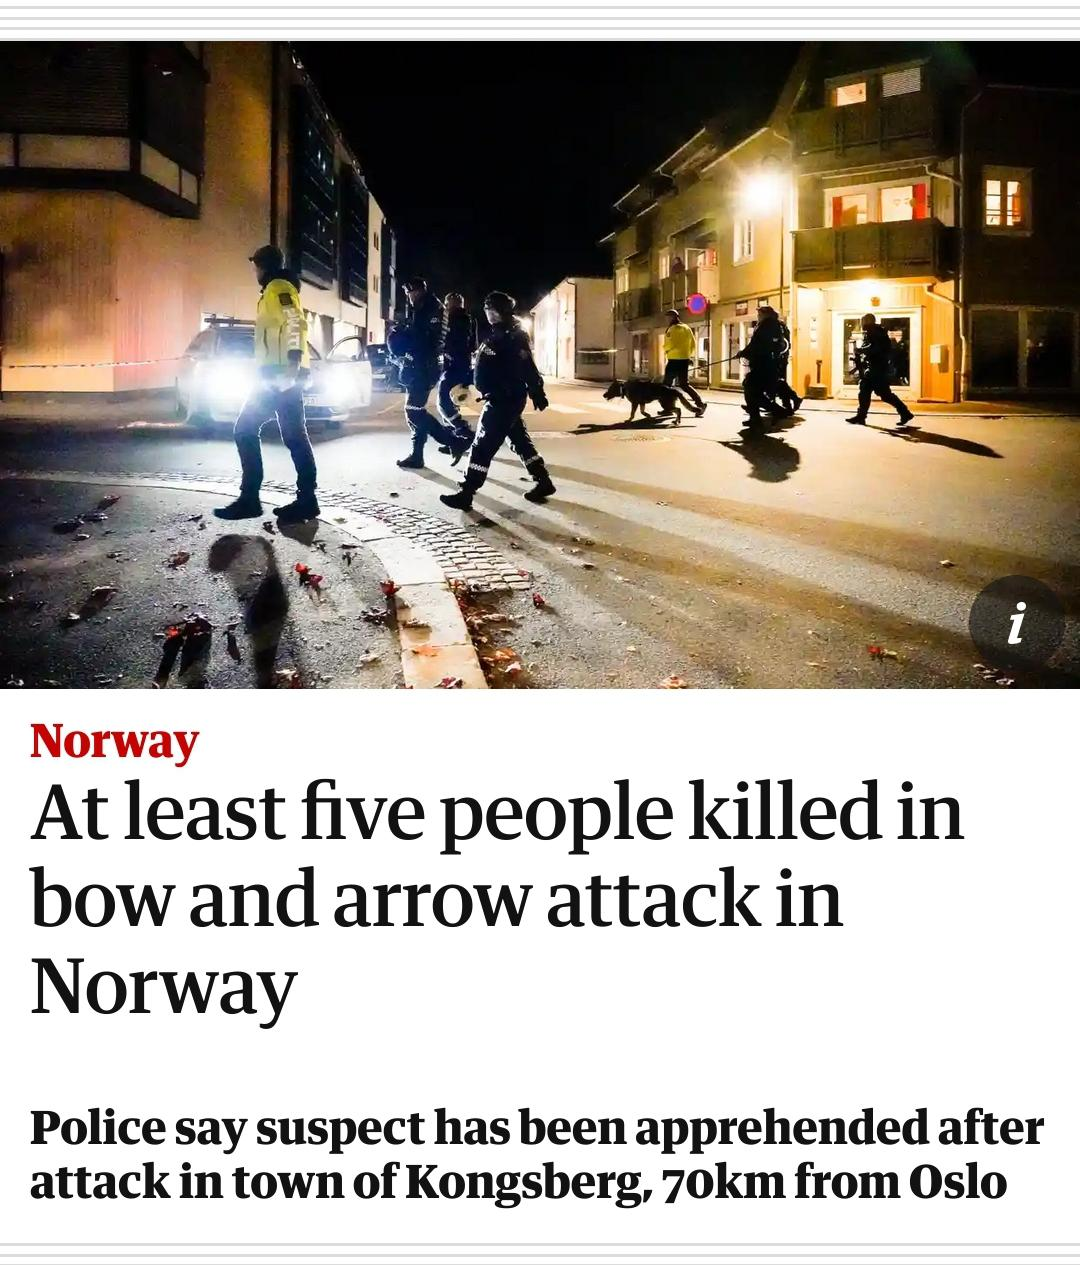 POS kills 5 people with bow and arrow